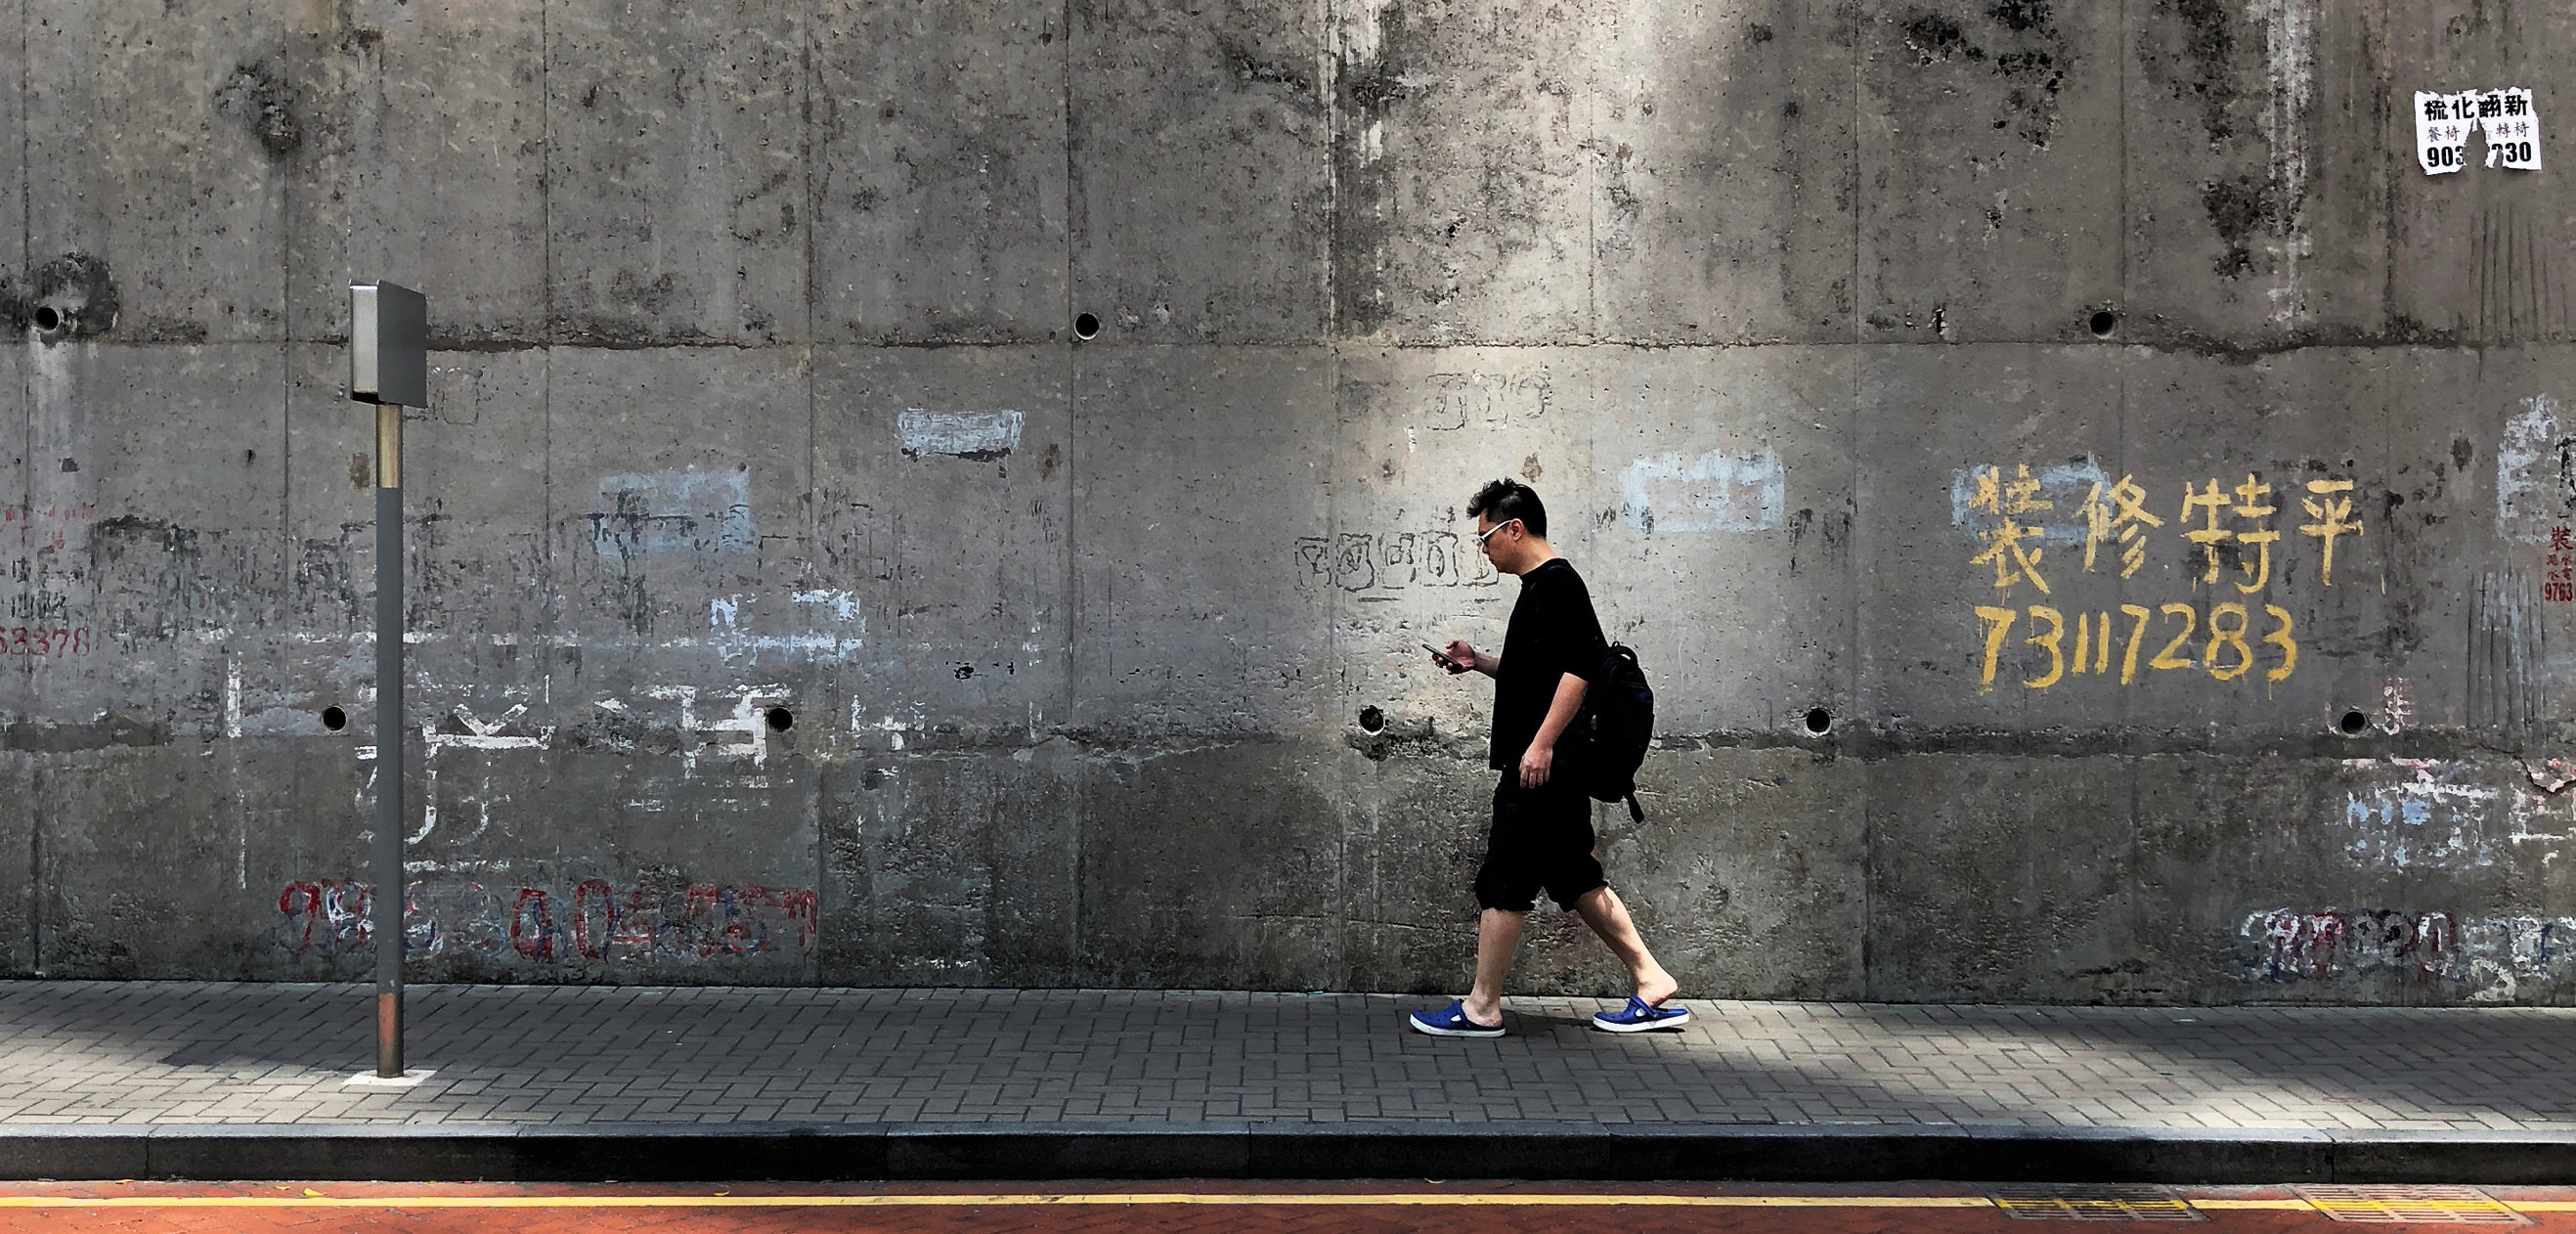 Man walking on pavement using a phone